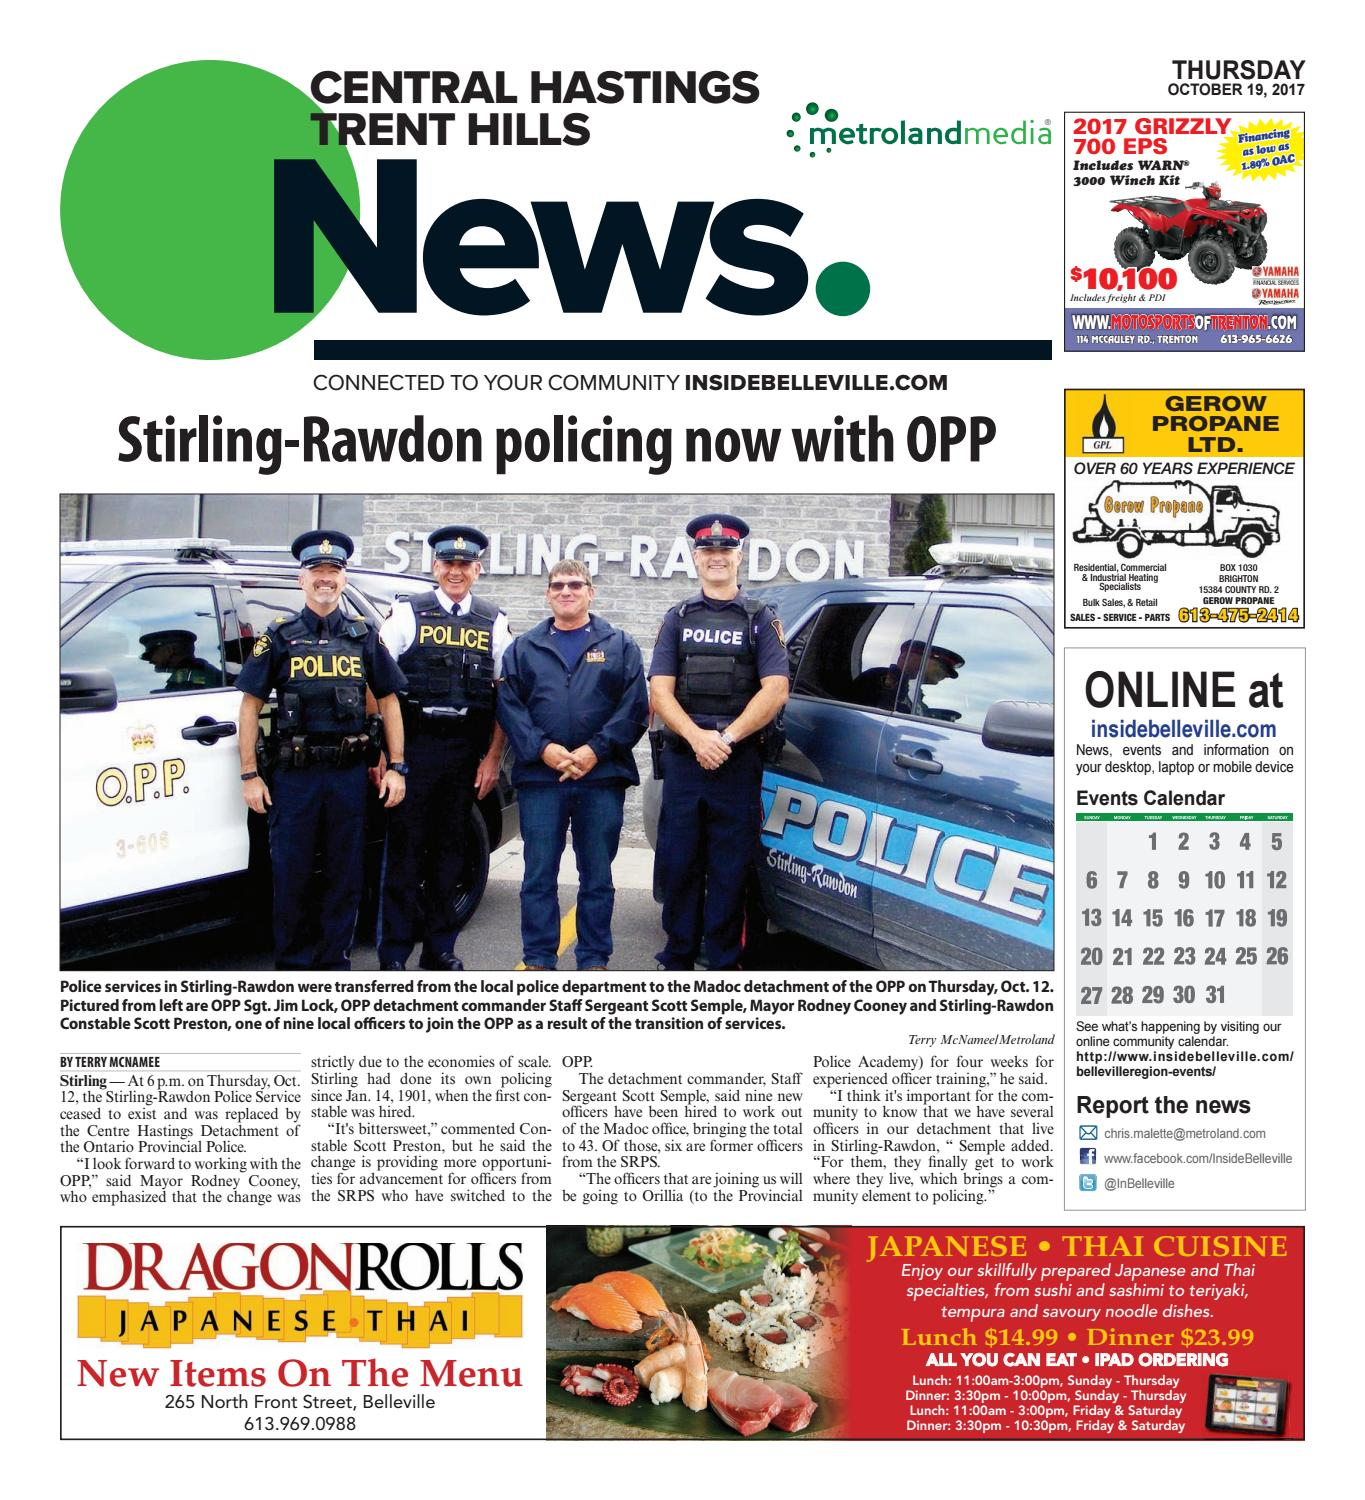 Chth101917 by Metroland East - Trent Hills Independent - issuu